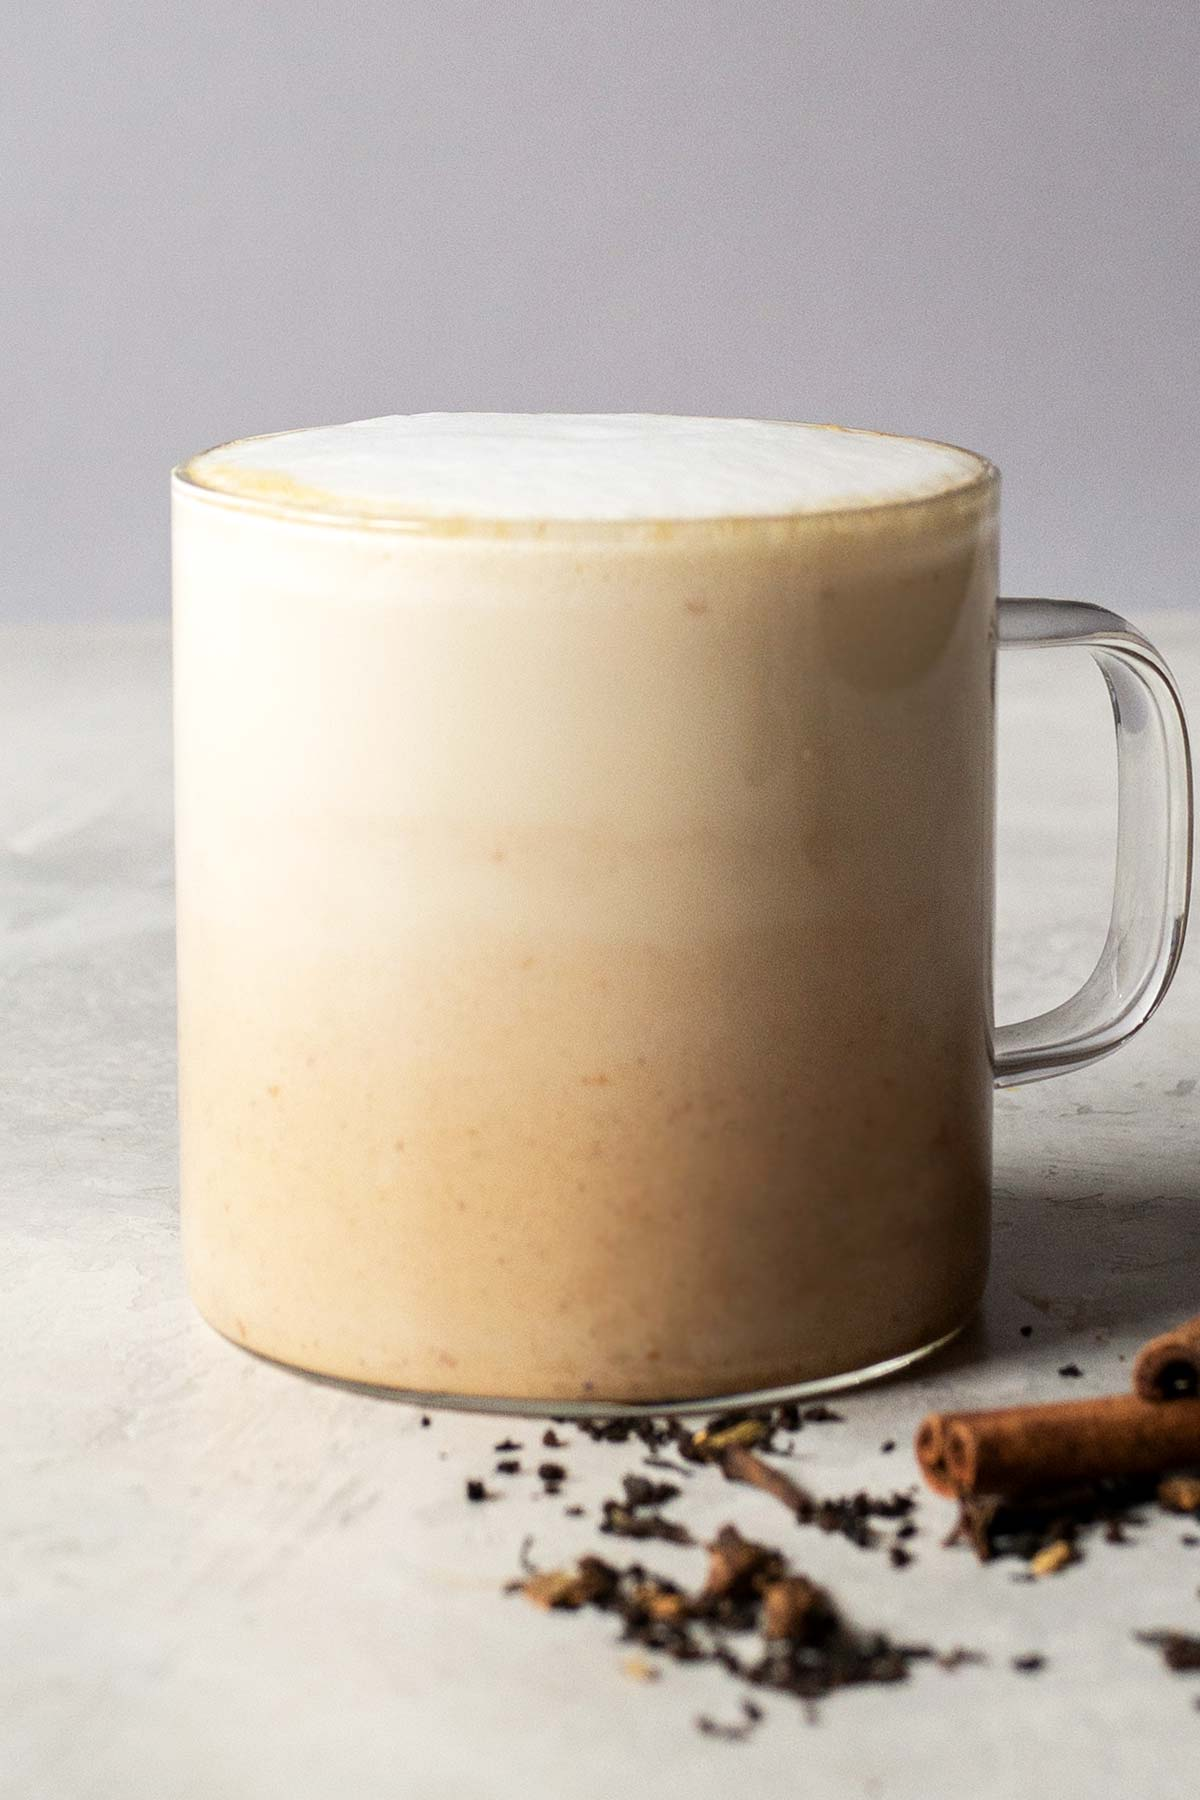 Pumpkin spice latte drink in a cup.